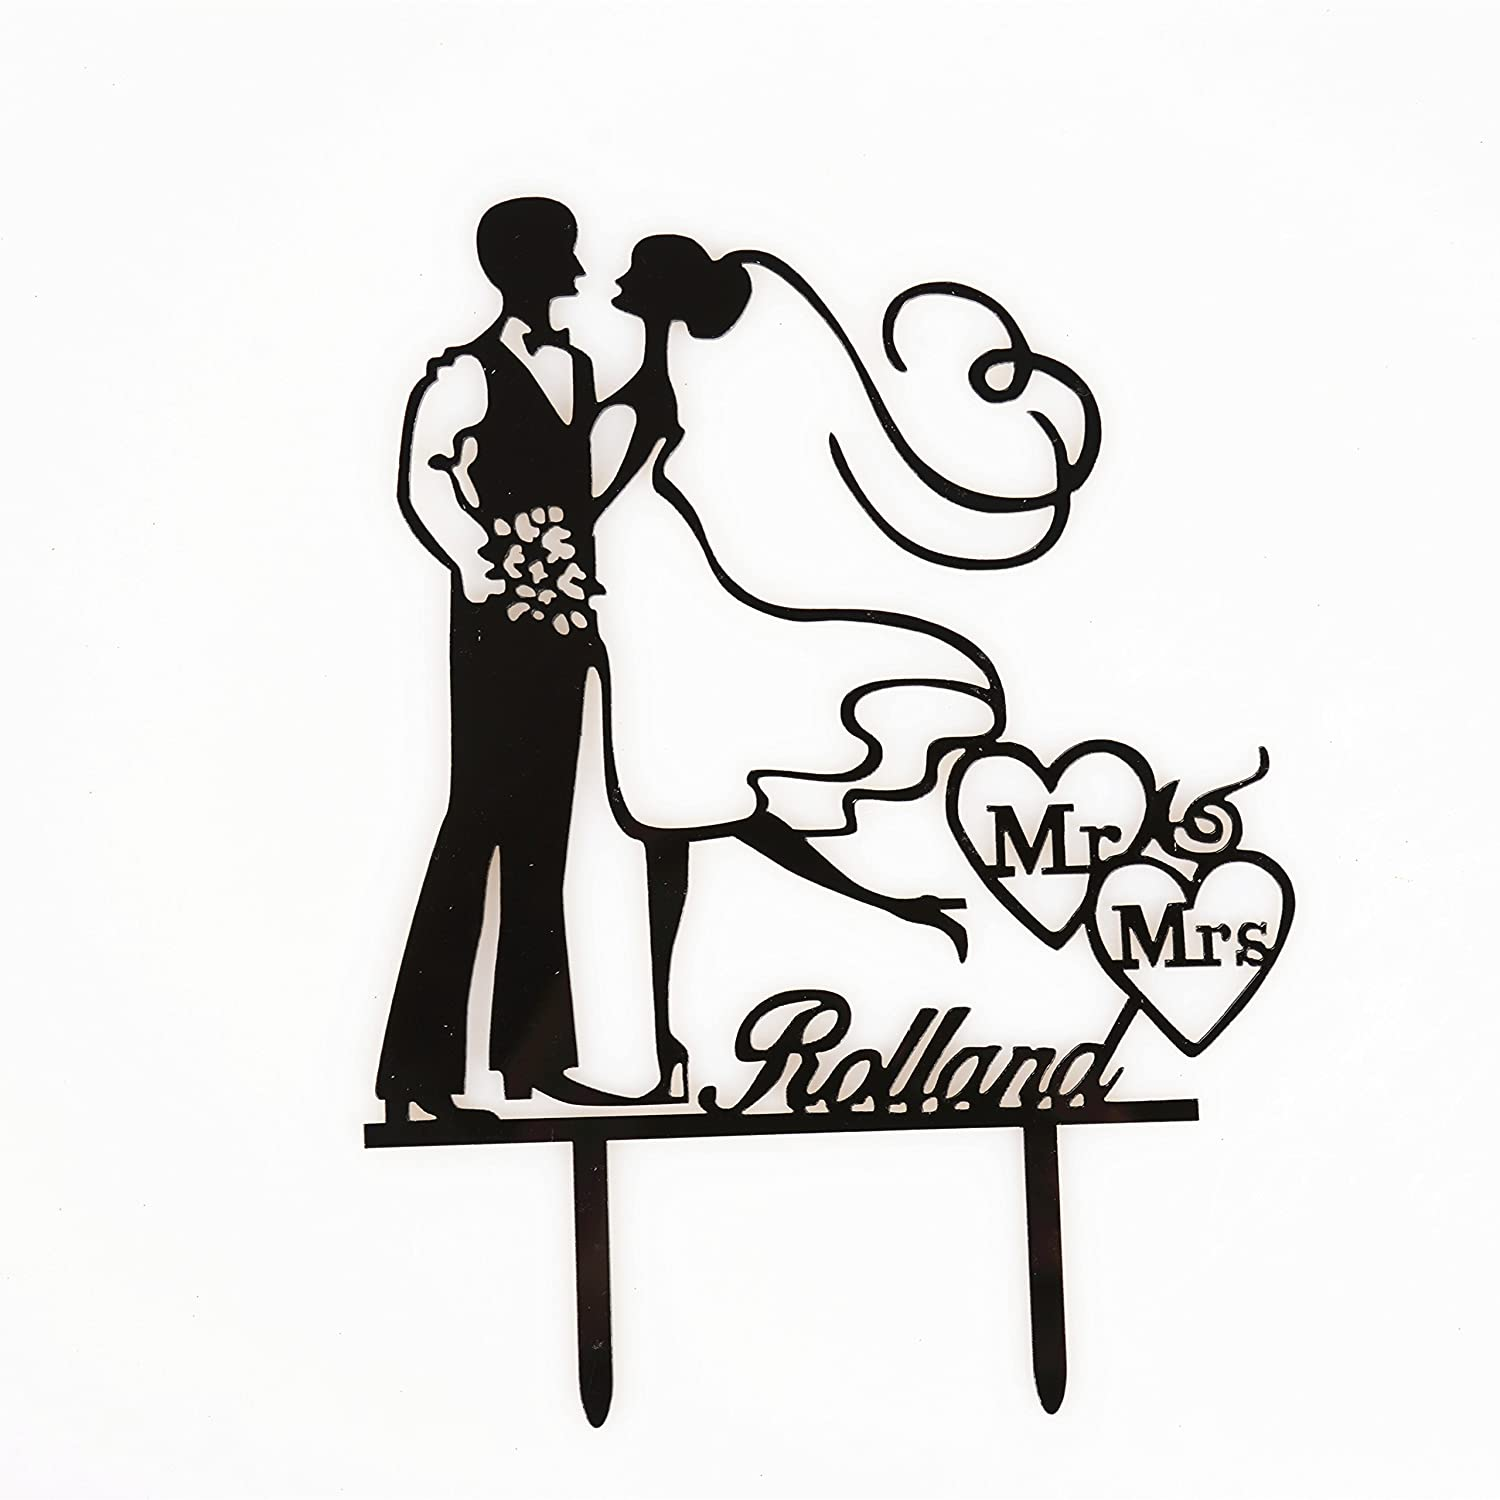 bride and groom cake topper mr mrs rolland arylic wedding cake Birthday Sheet Cakes with Roses bride and groom cake topper mr mrs rolland arylic wedding cake topper decoration amazon grocery gourmet food